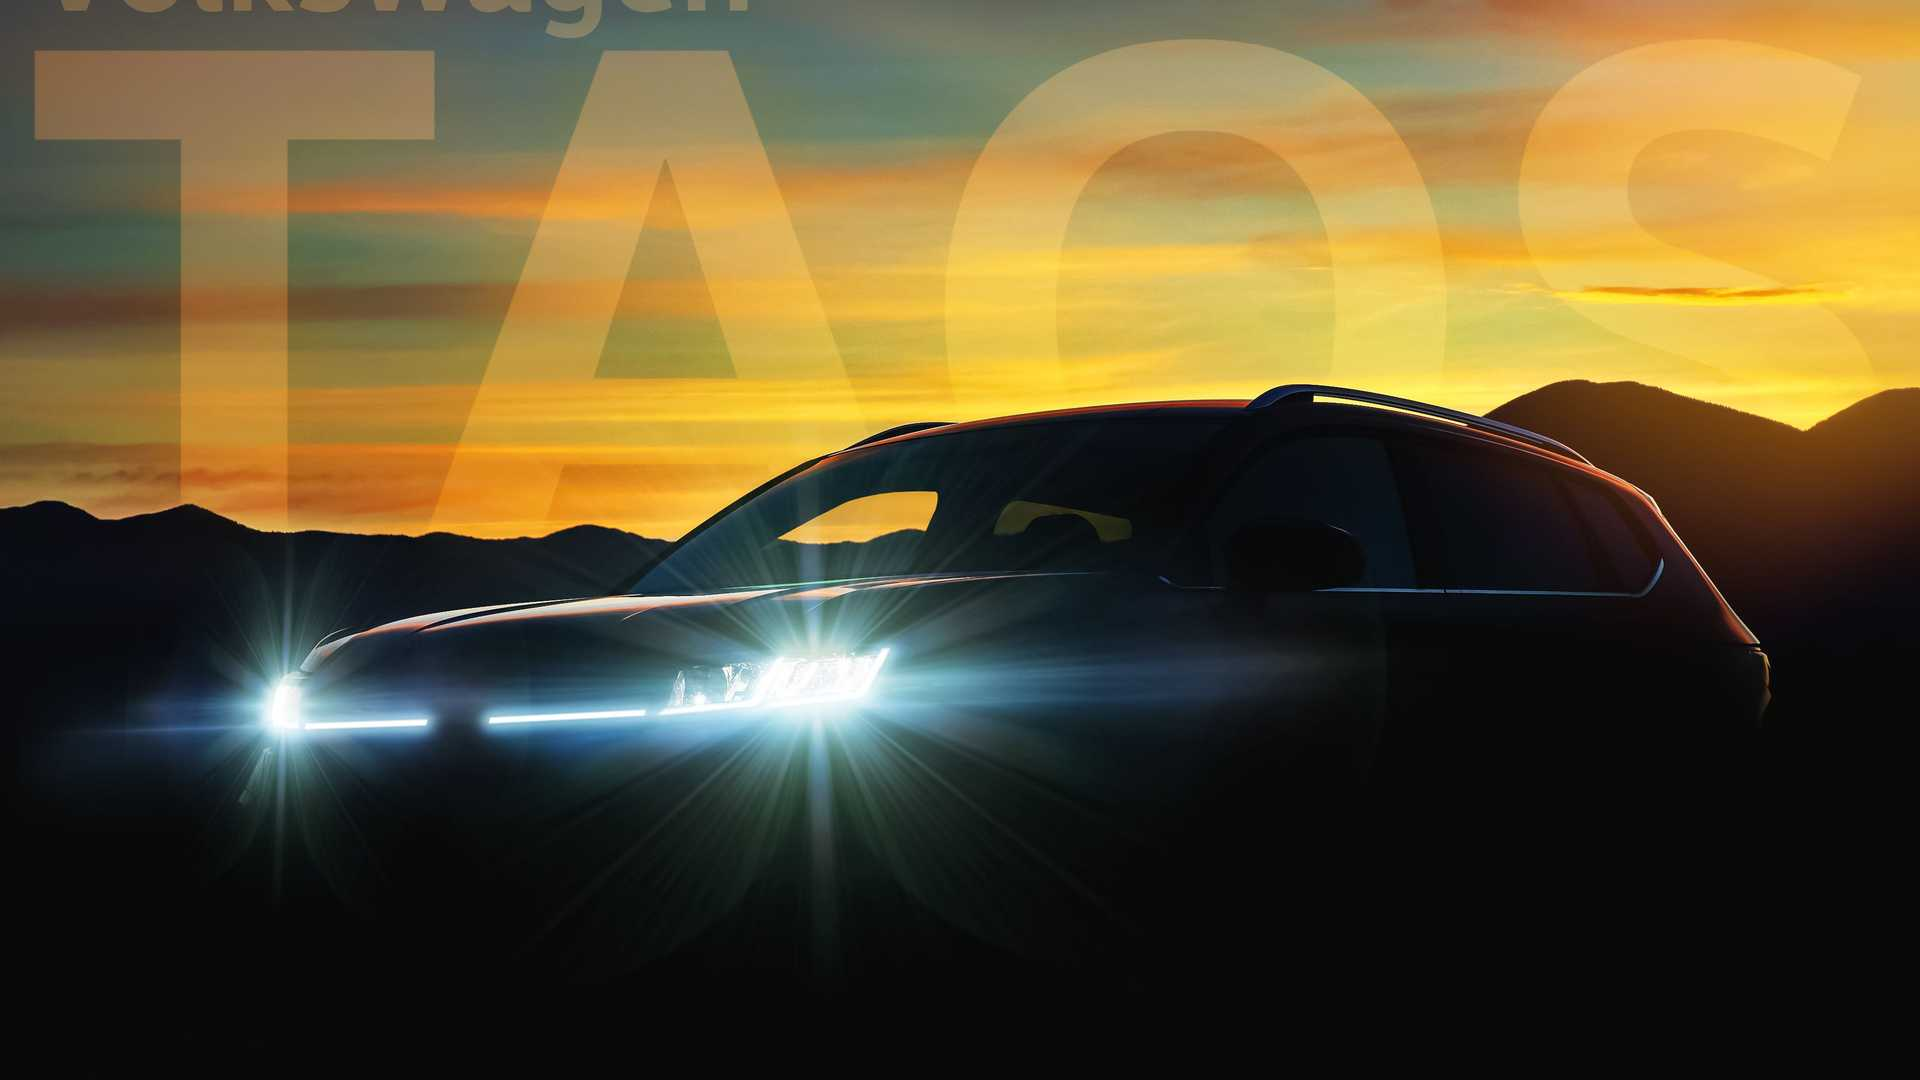 Volkswagen Group of America has announced the premiere of a brand-new SUV model, Taos, on October 13, 2020. The crossover is marketed as a more affordable alternative to the Tiguan.